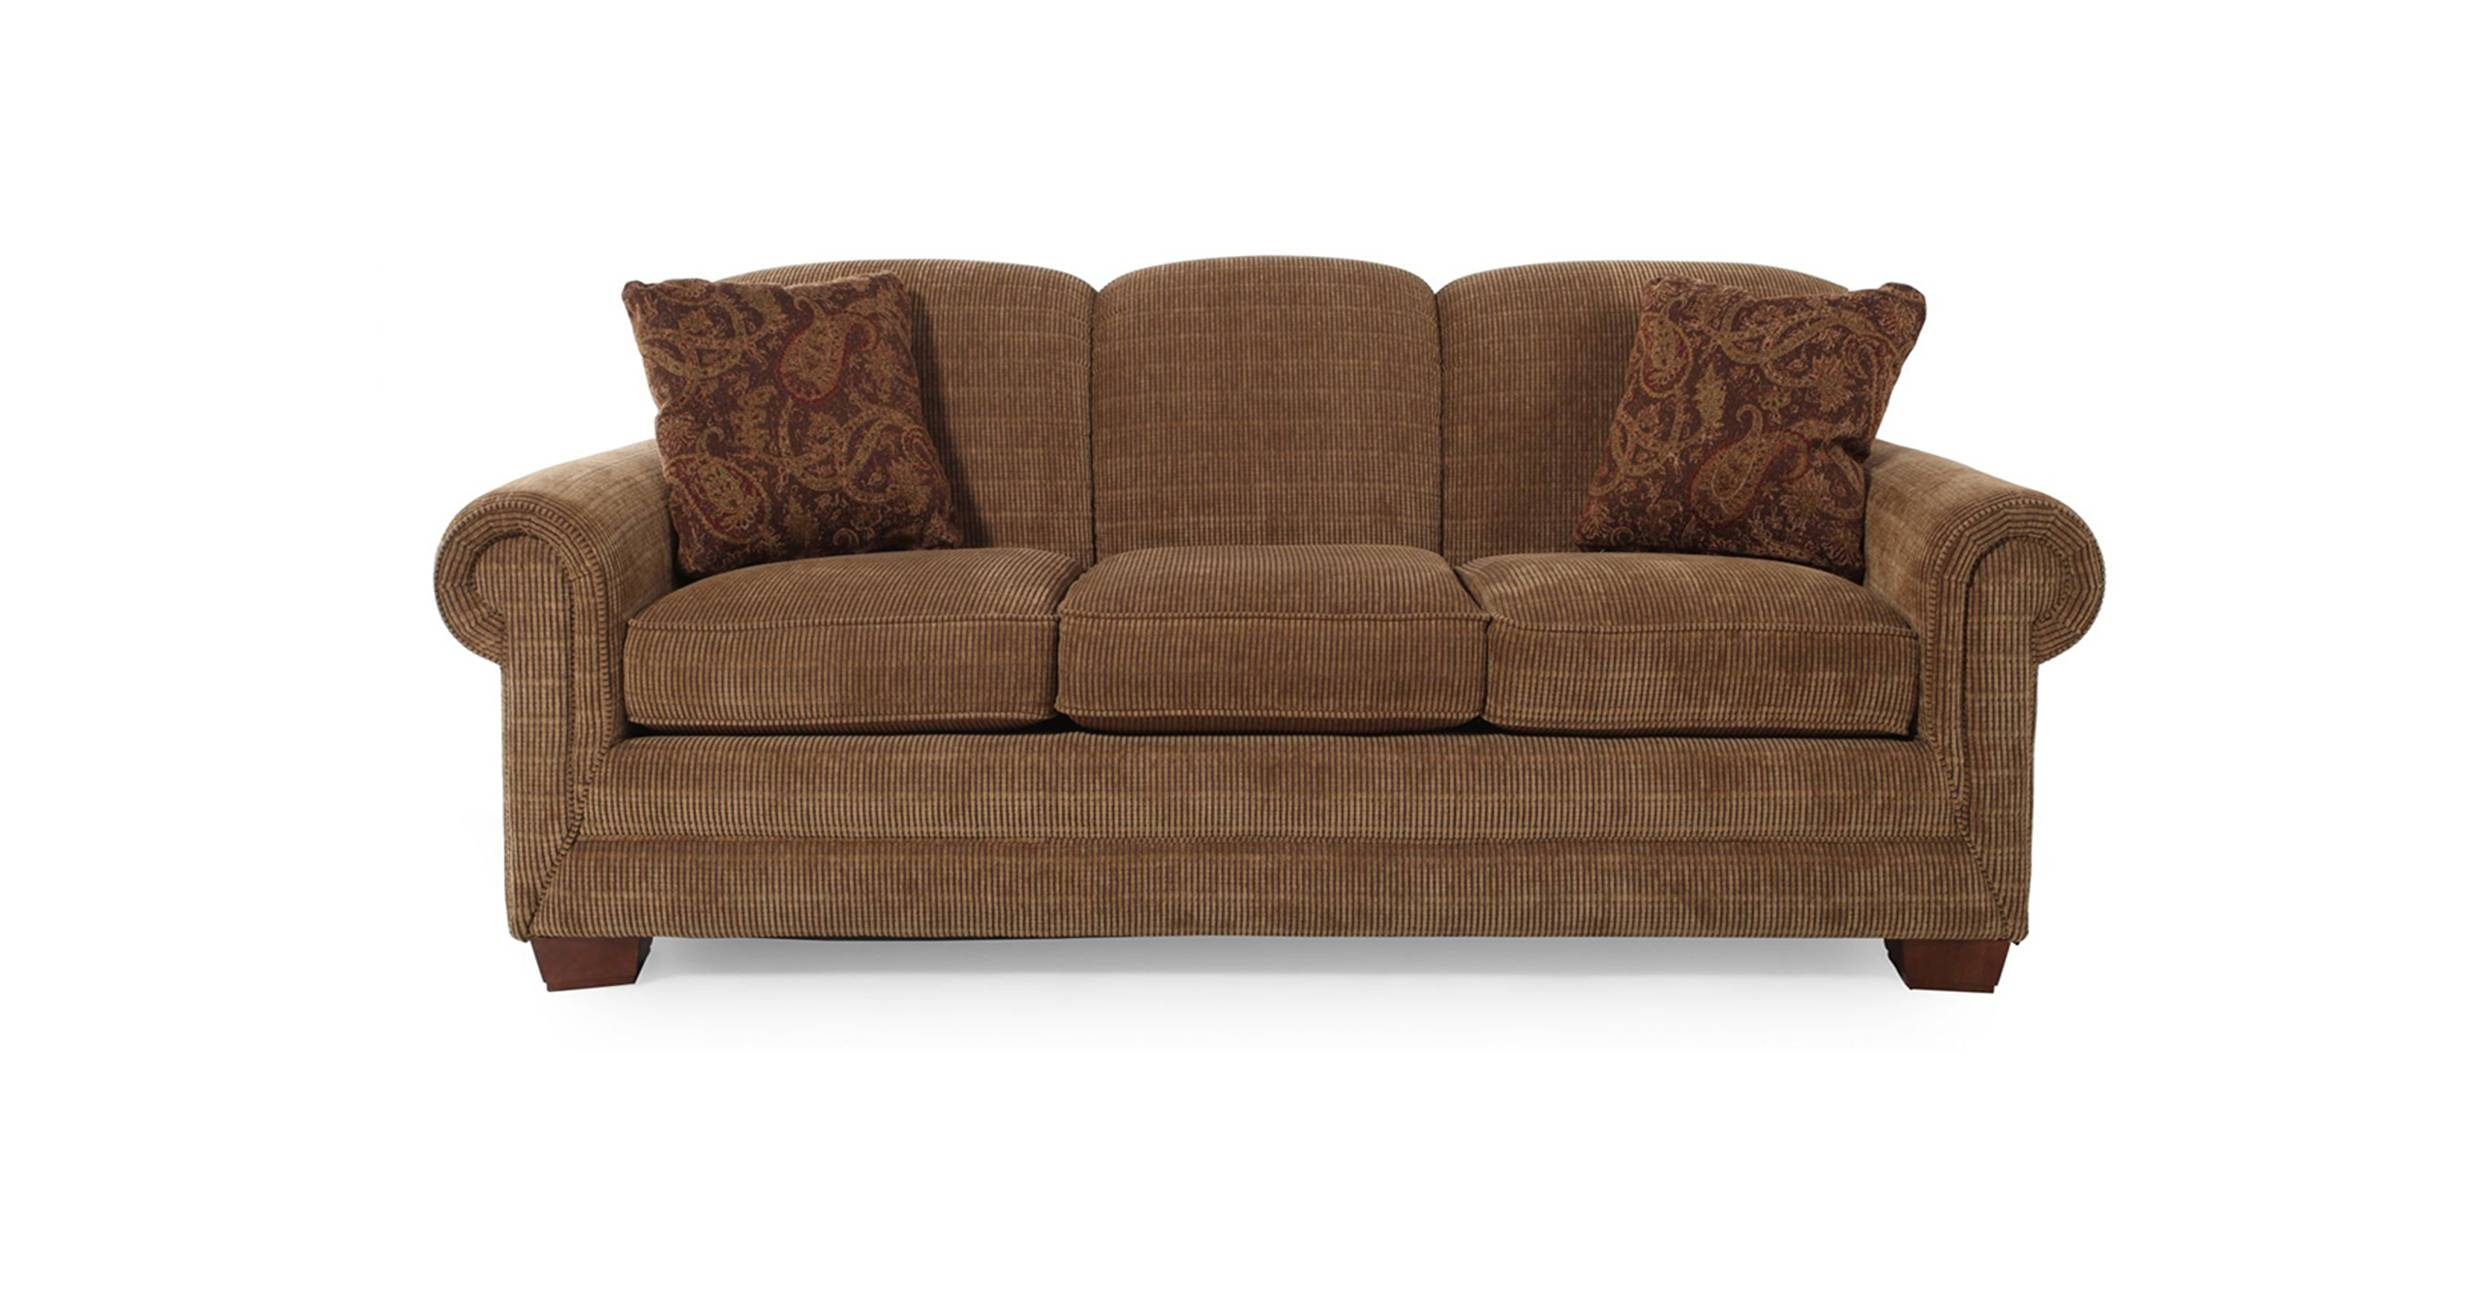 Lazy Boy Sofas And Loveseats - Cornett's Furniture And Bedding with regard to Lazy Boy Sofas (Image 10 of 15)